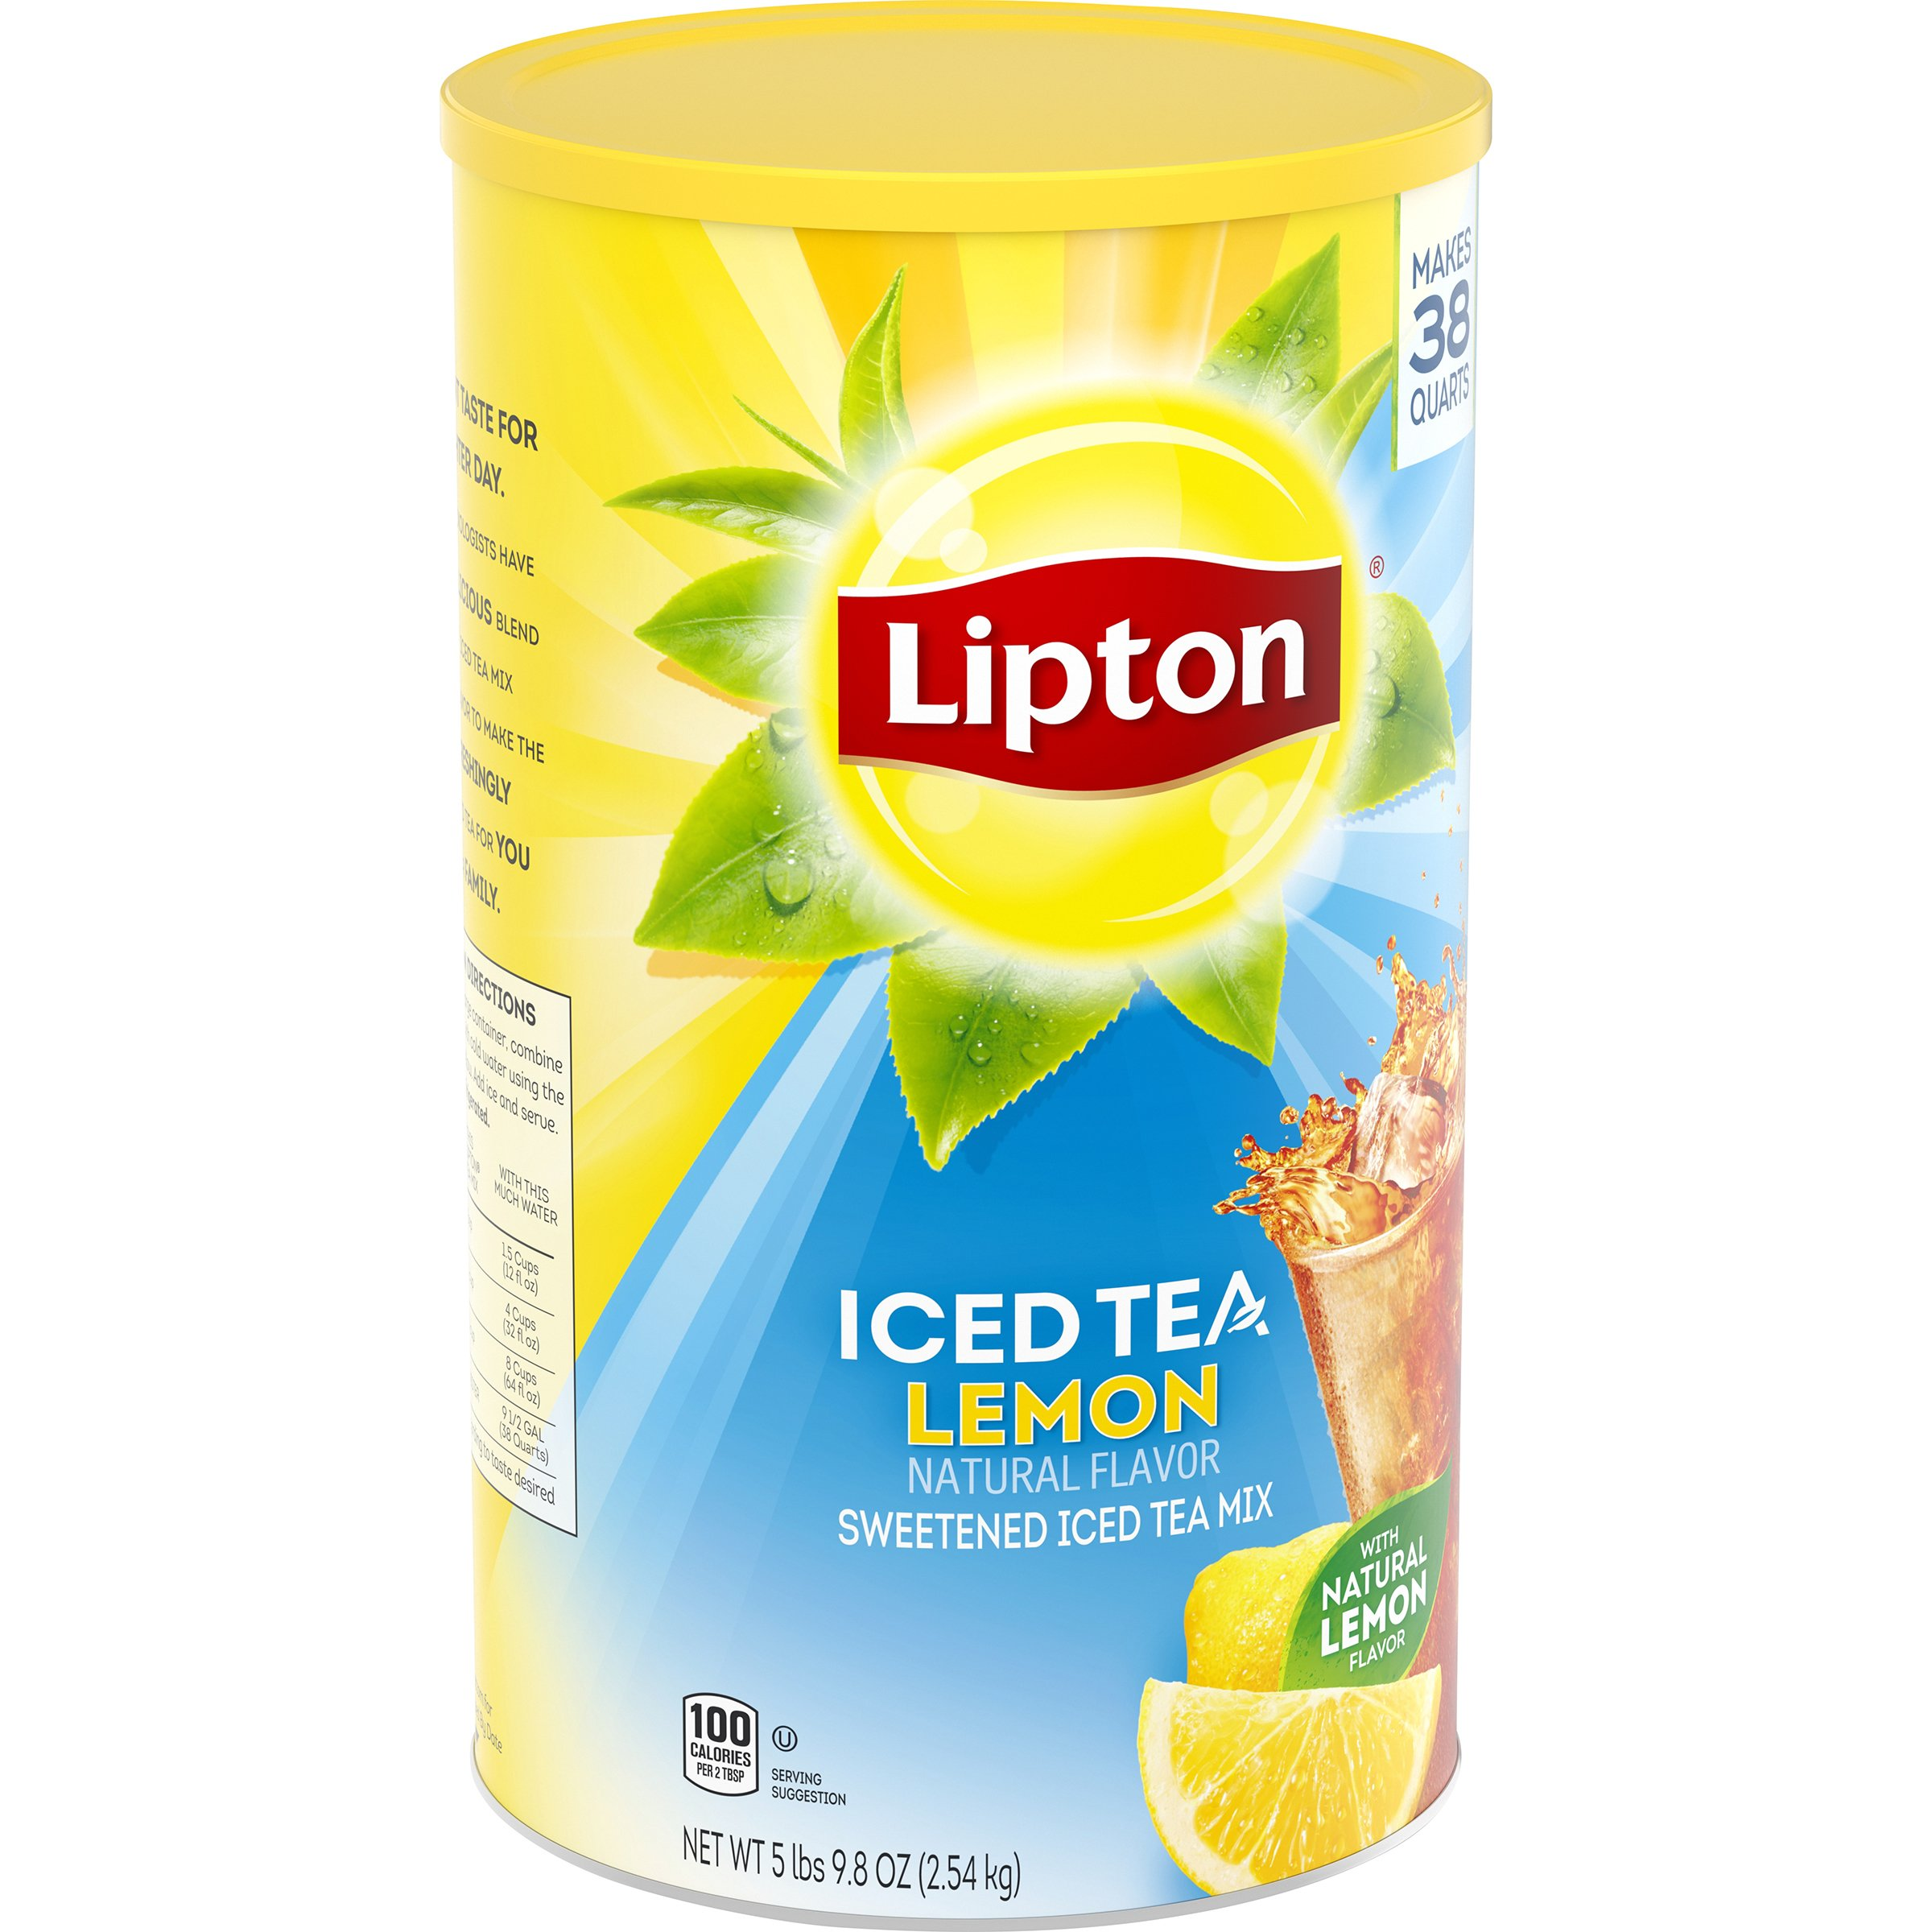 Lipton Lemon Iced Tea Mix Shop Tea At H E B